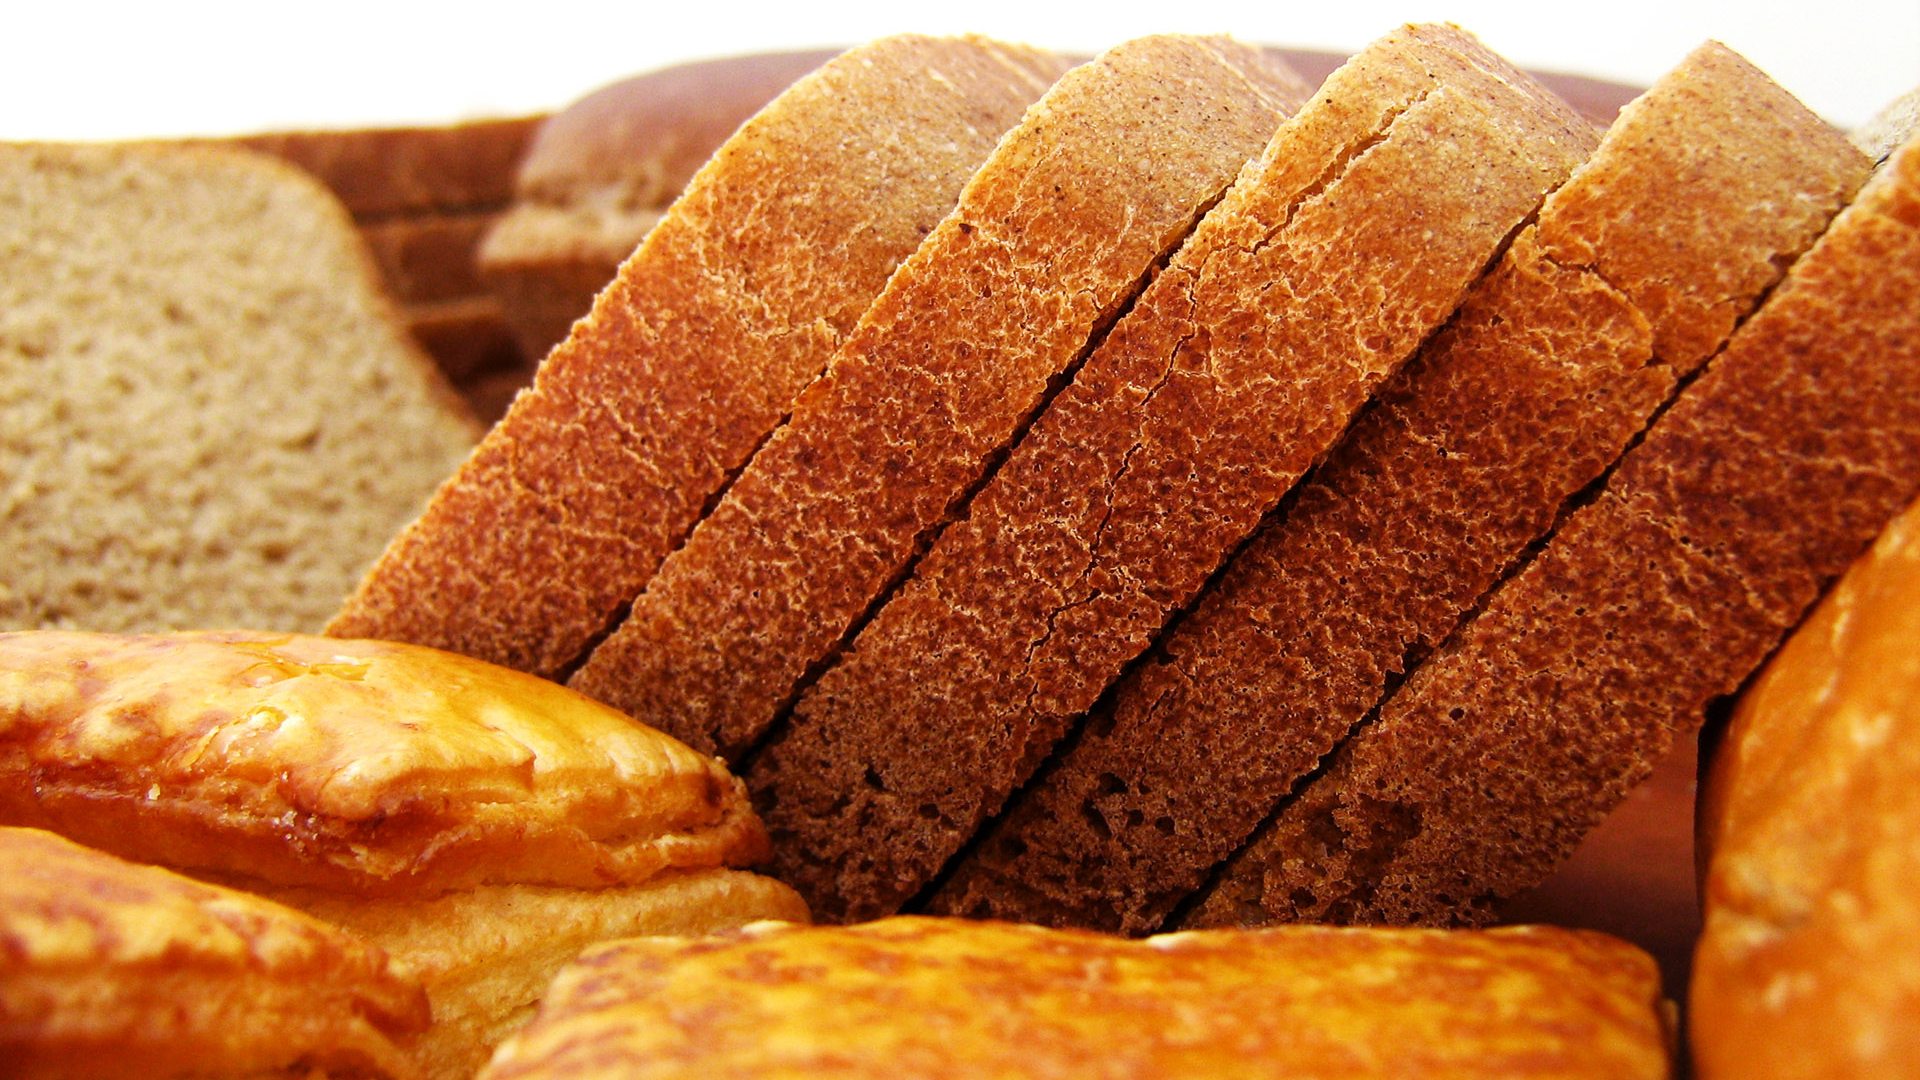 Free Download Bread Wallpaper Wallpapers Hd Wallpapers 83397 1920x1200 For Your Desktop Mobile Tablet Explore 46 Wallpaper Dough Wallpaper Cleaner Recipe Wallpaper Cleaning Putty How To Clean Wallpaper